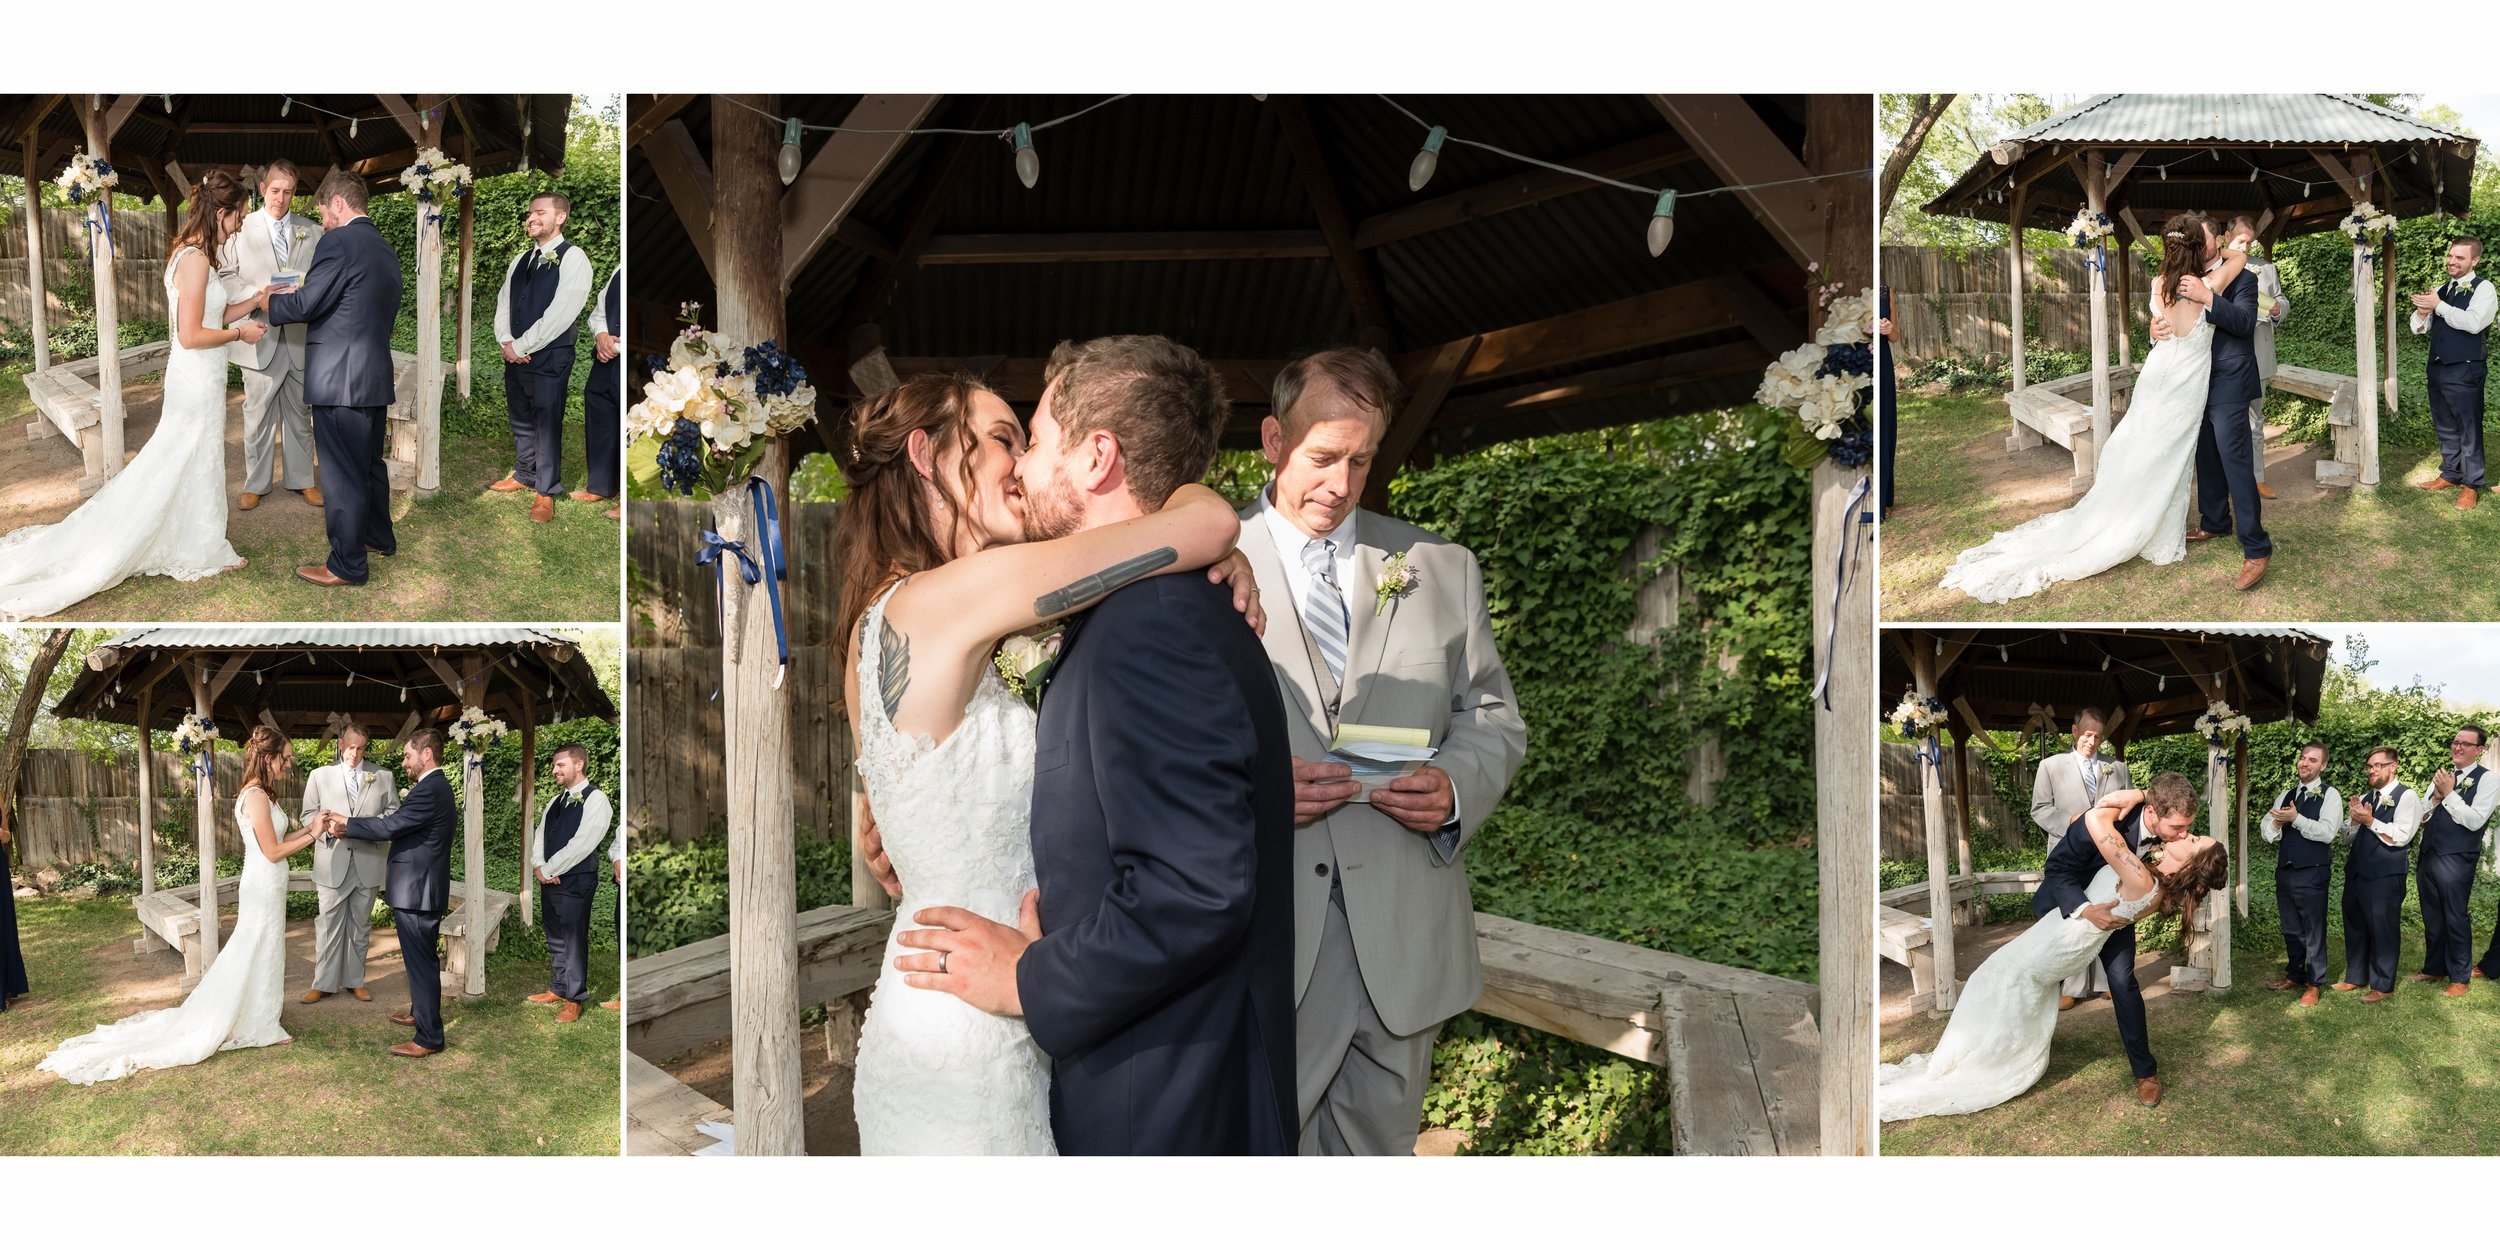 The wedding ceremony in front of the gazebo at Old Town Farm